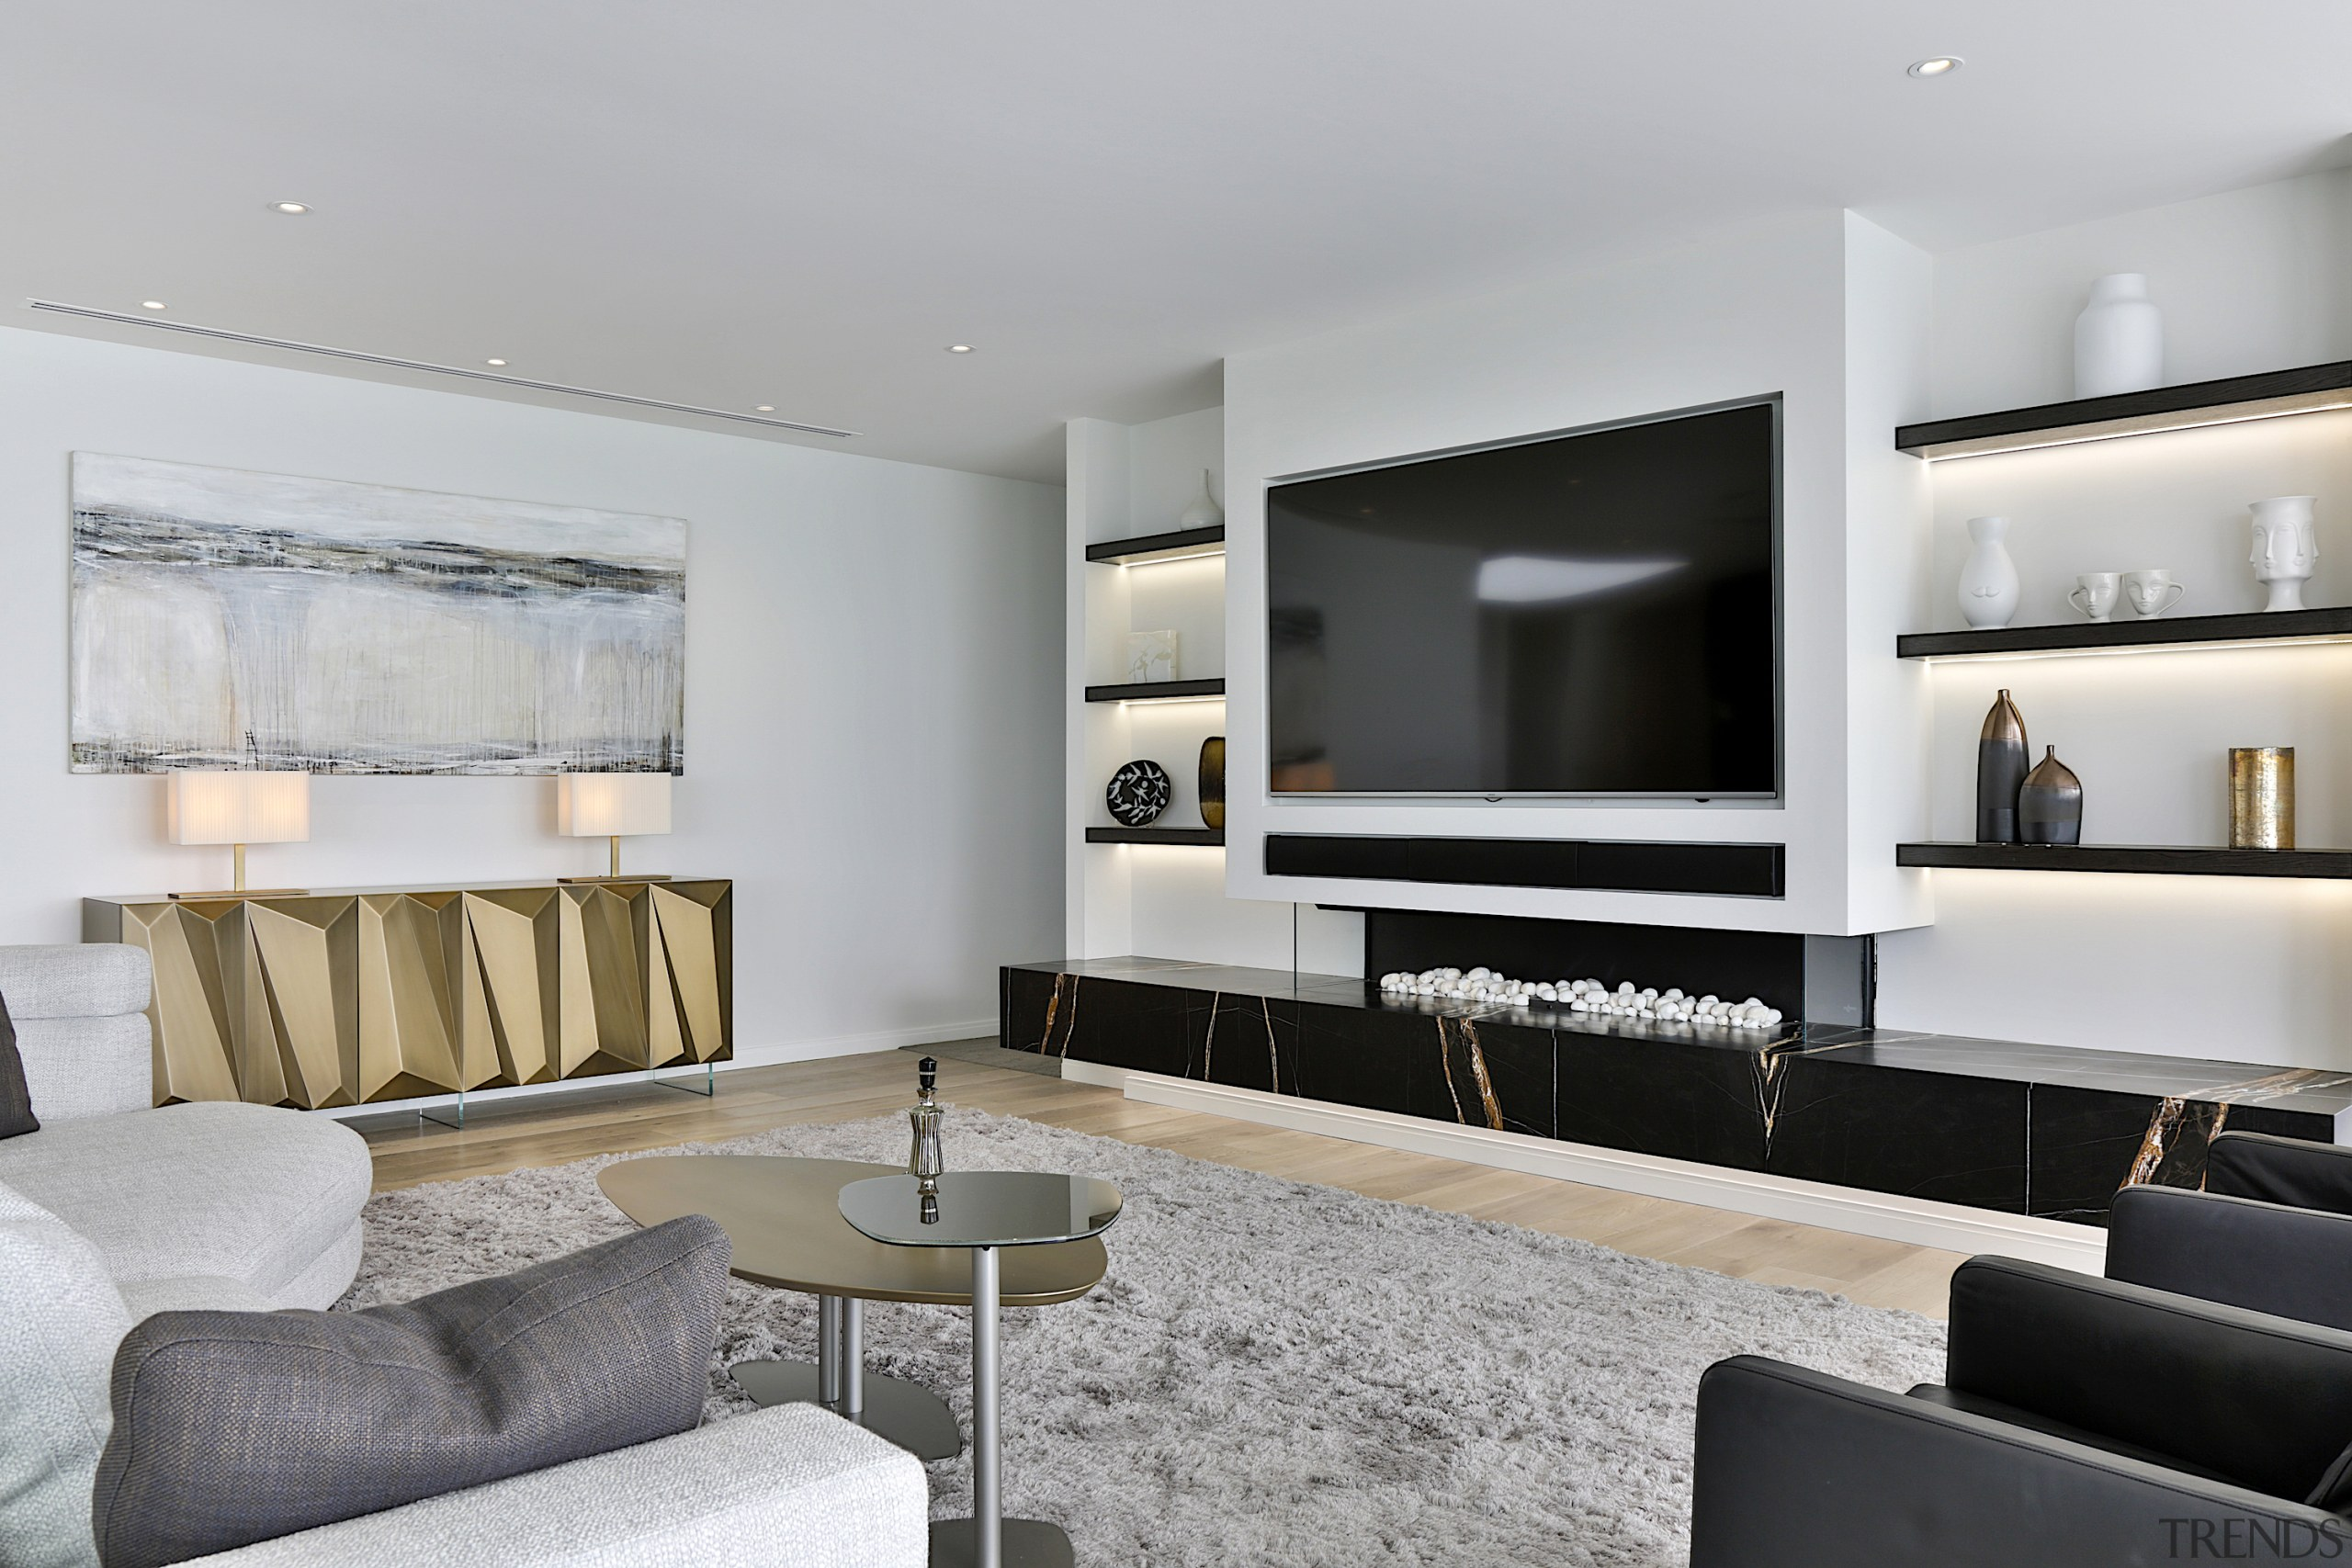 The walls throughout are painted in a neutral gray